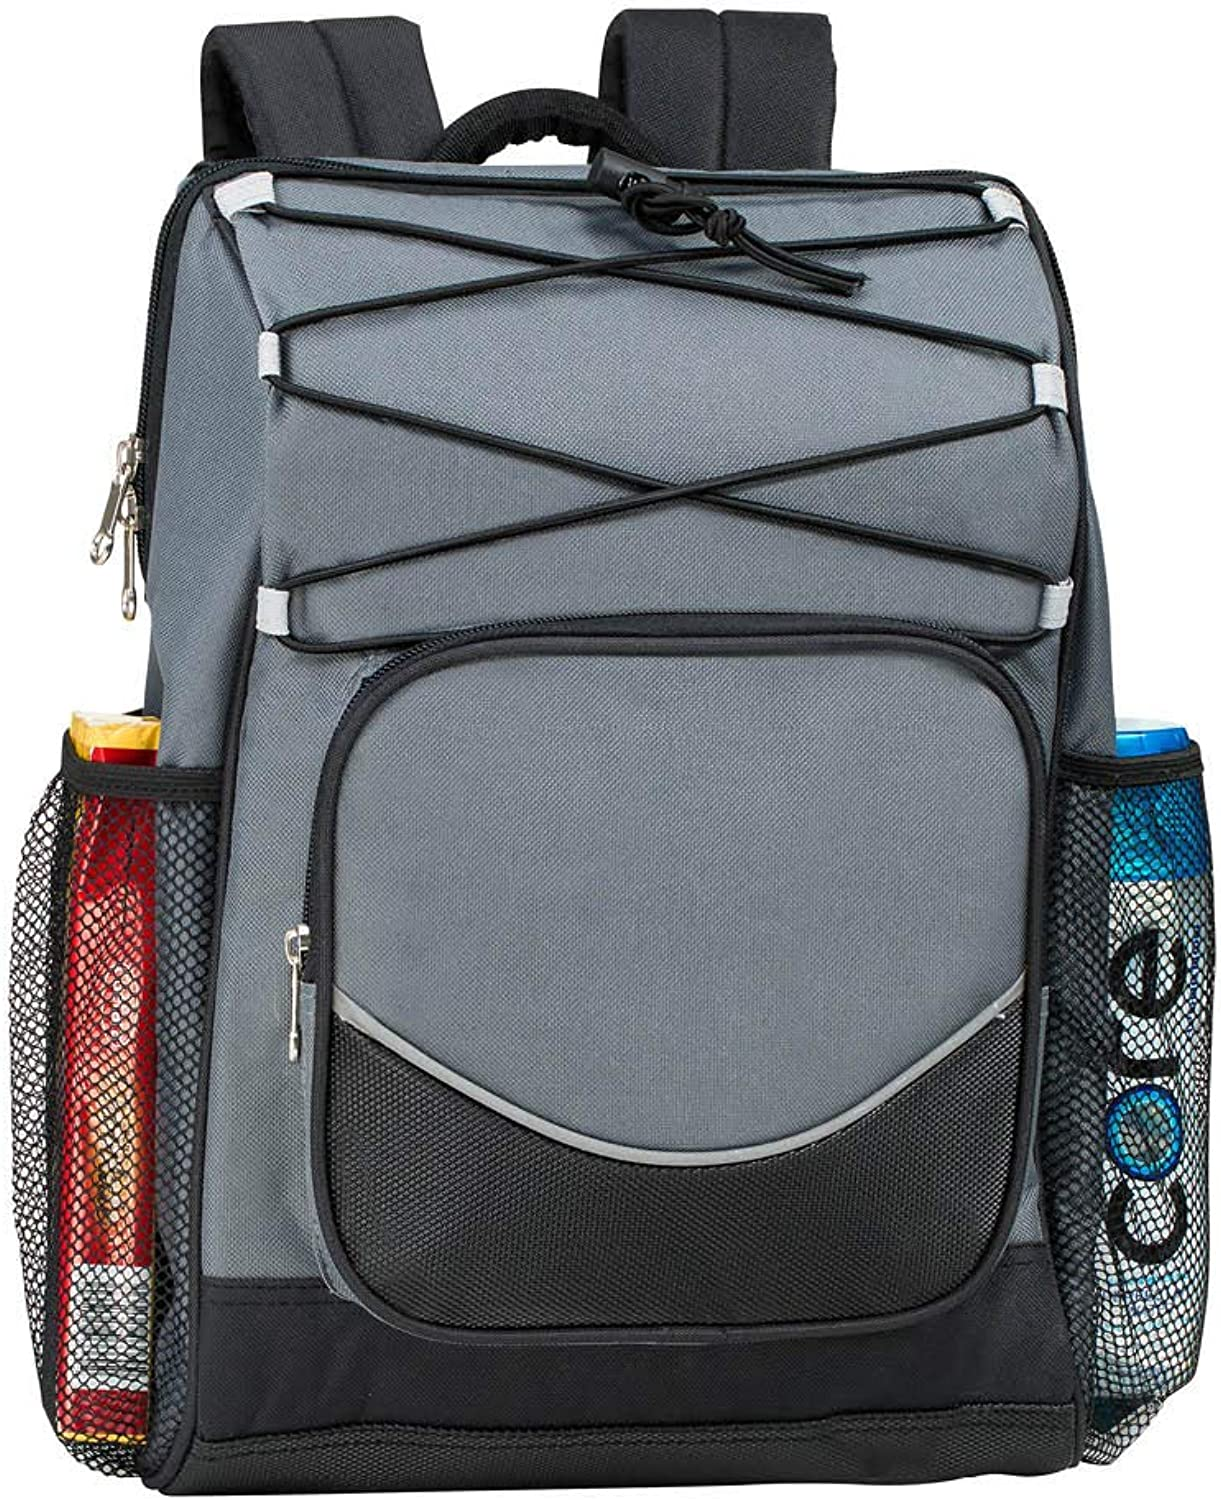 Backpack Cooler Backpack Insulated, Hiking Backpack Coolers, Travel Backpack Great Soft Cooler Bag for Backpacking, Rowing, Picking Bag, Beach Bag, Lunch Bag for Women and Men, Holds 20 cans